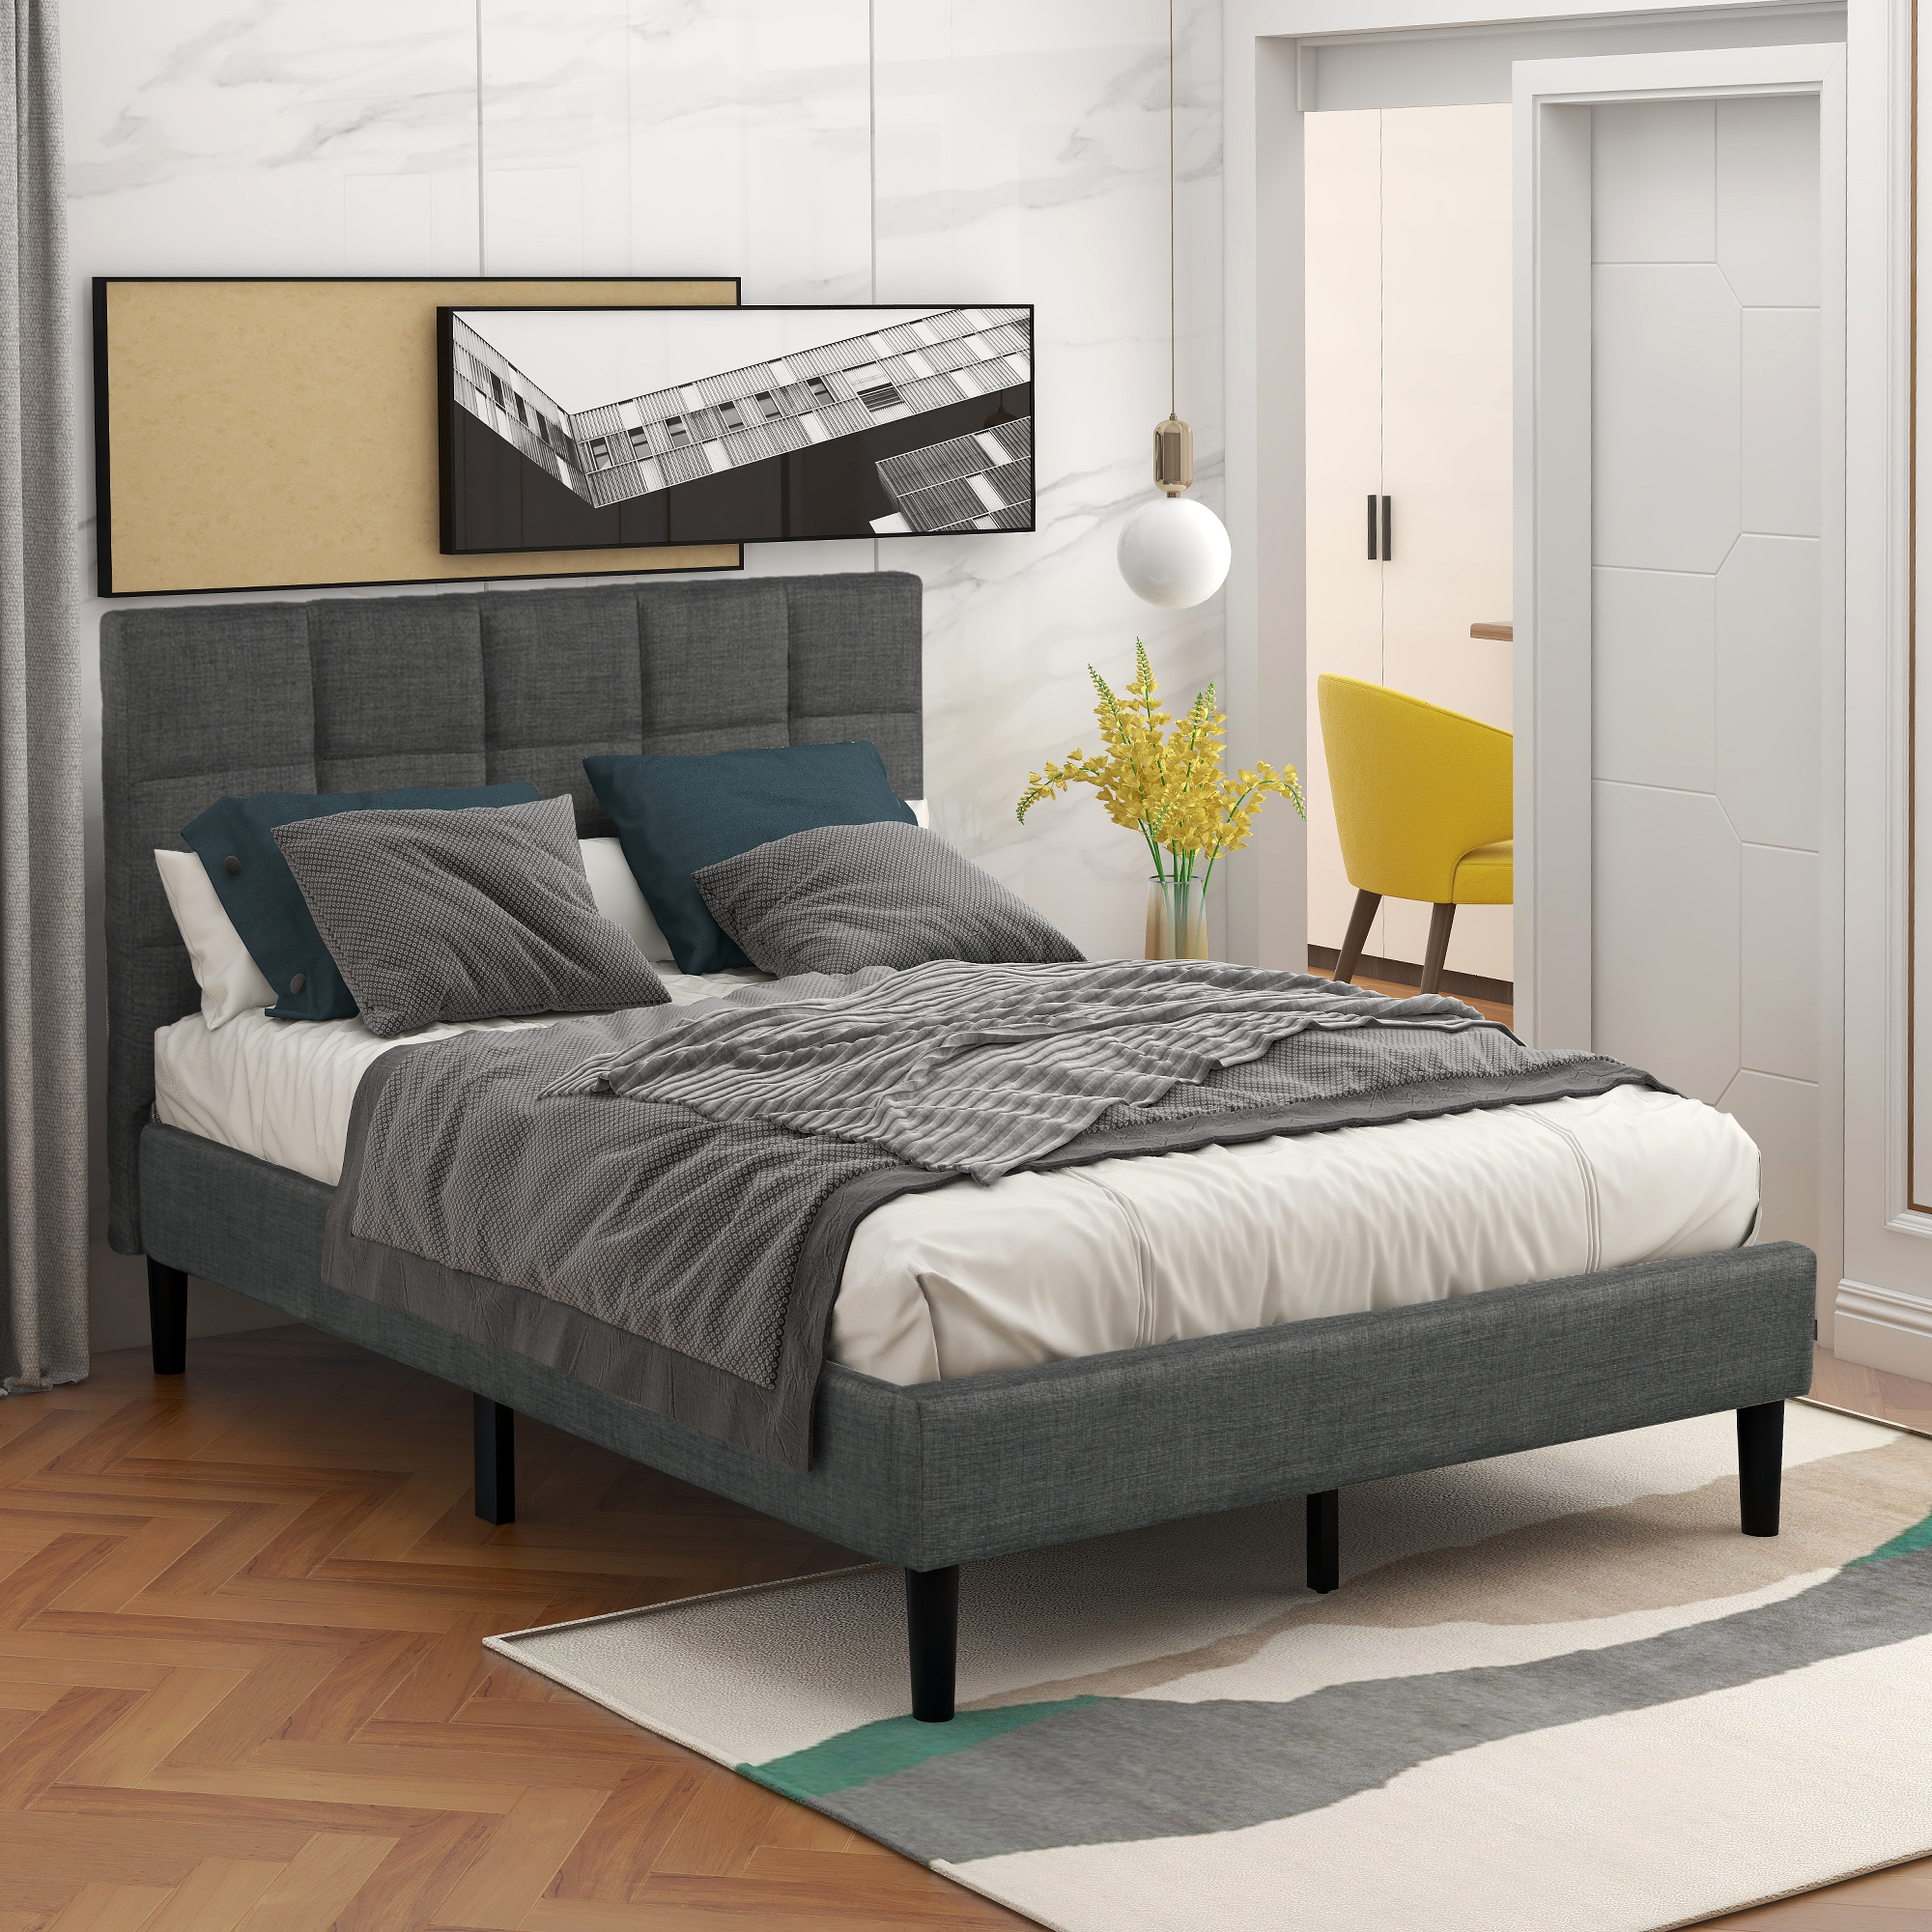 clearance twin bed frame no box spring needed 2020 on walmart bedroom furniture clearance id=97082